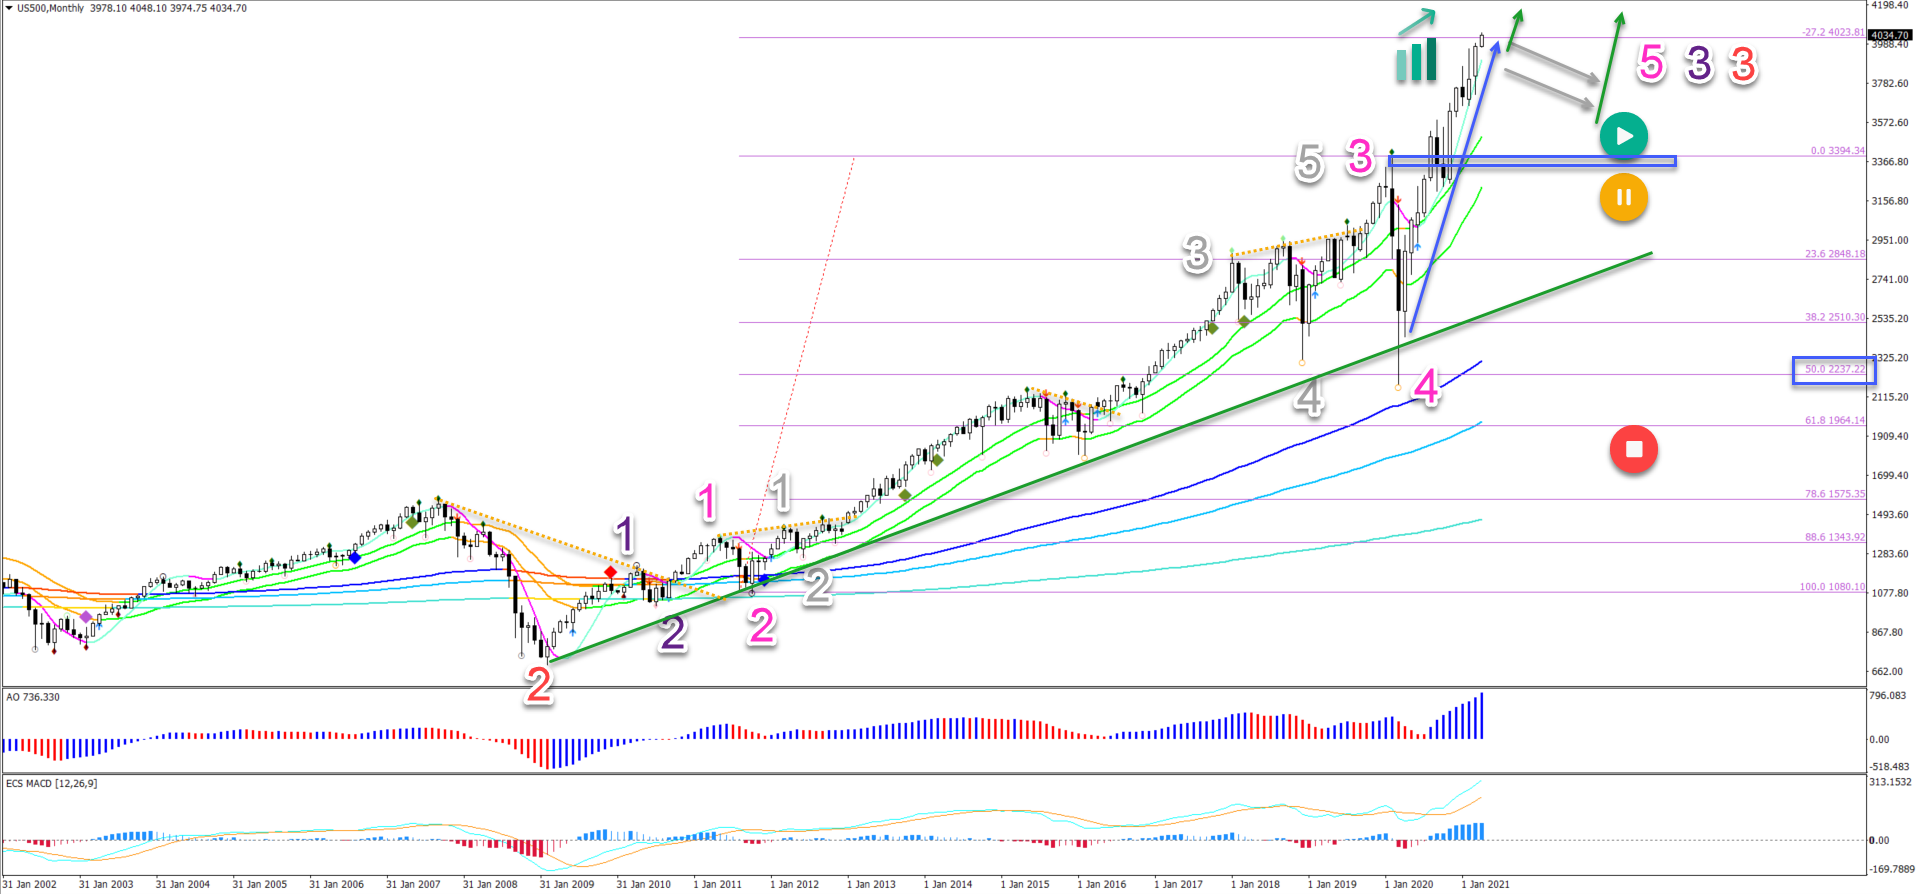 S&P 500 5.4.2021 monthly chart